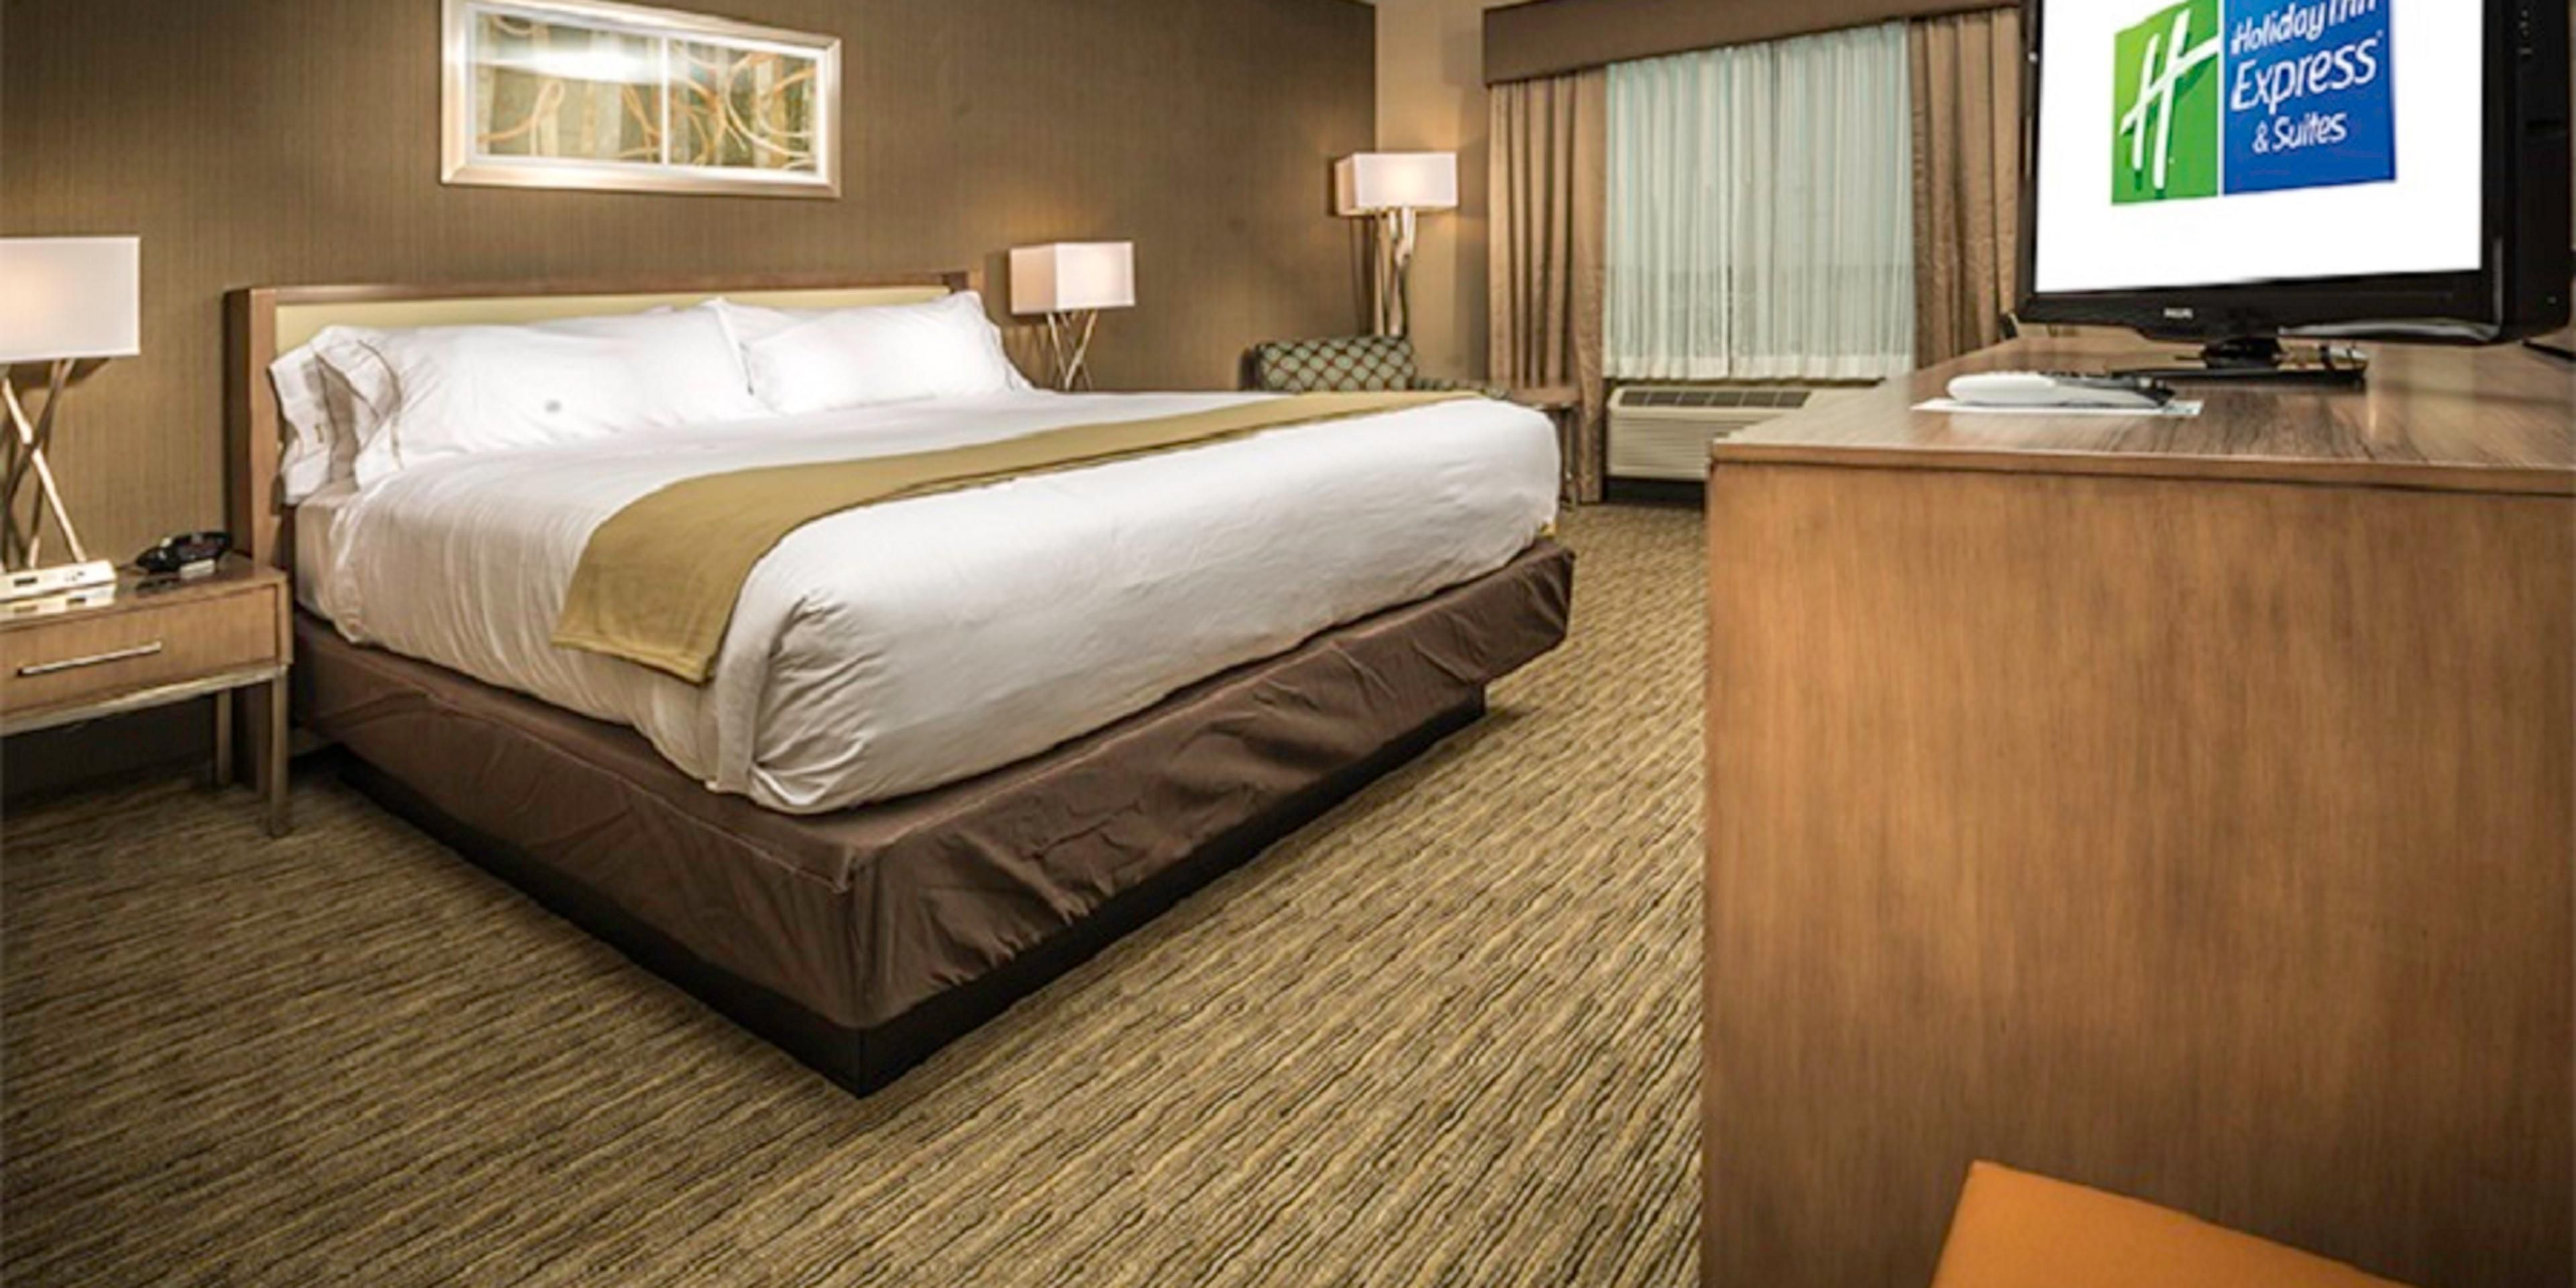 Holiday Inn Express & Suites Salt Lake City South - Murray Hotel by IHG